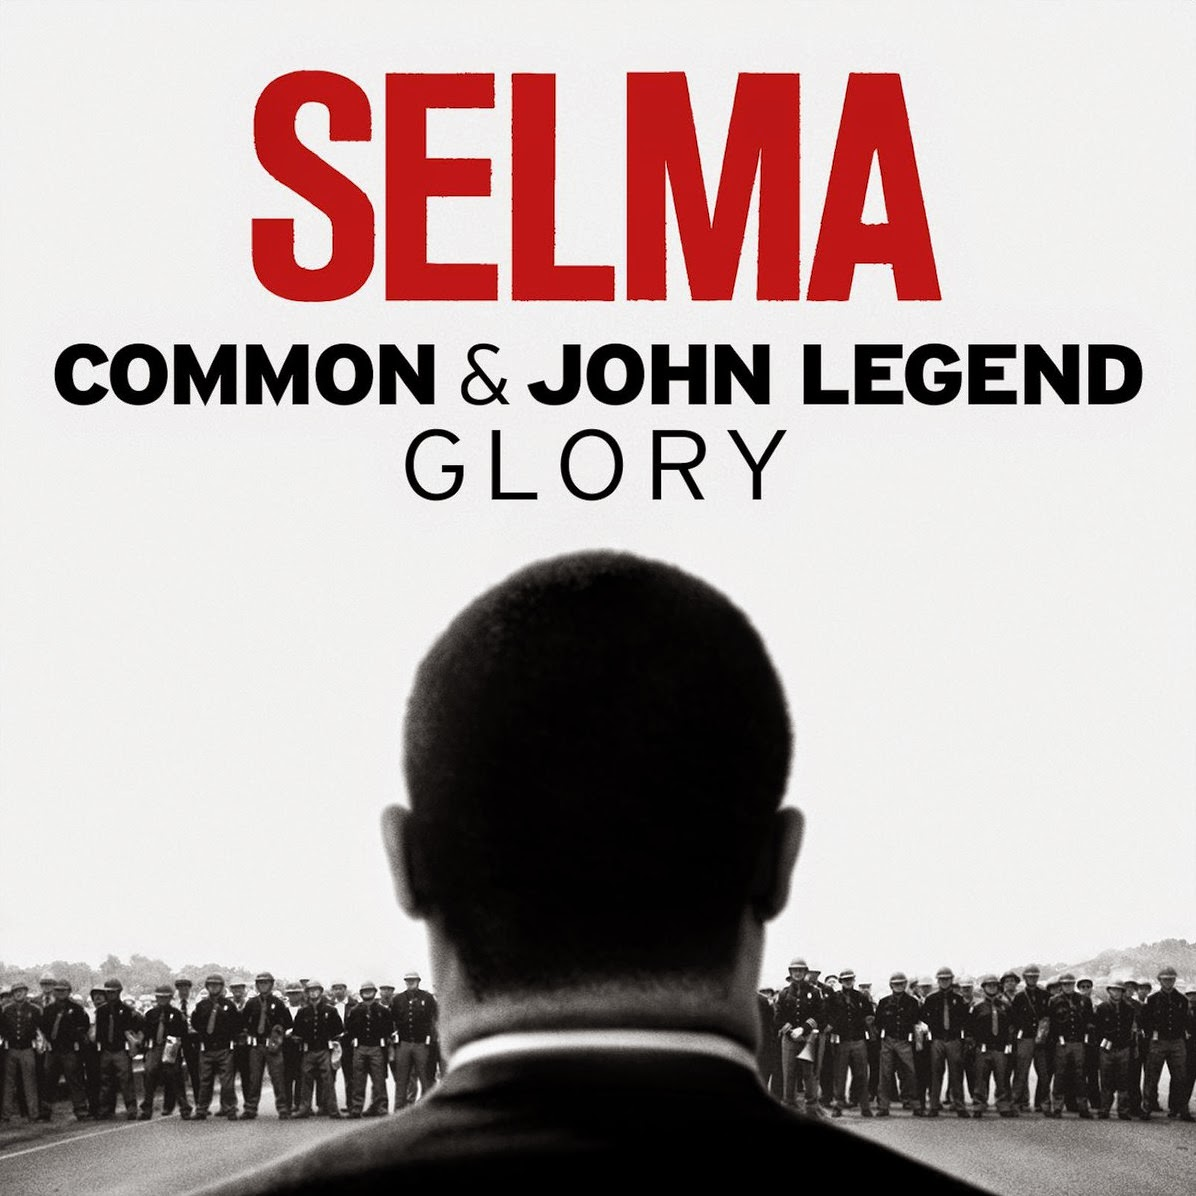 selma soundtracks-common-john legend-glory